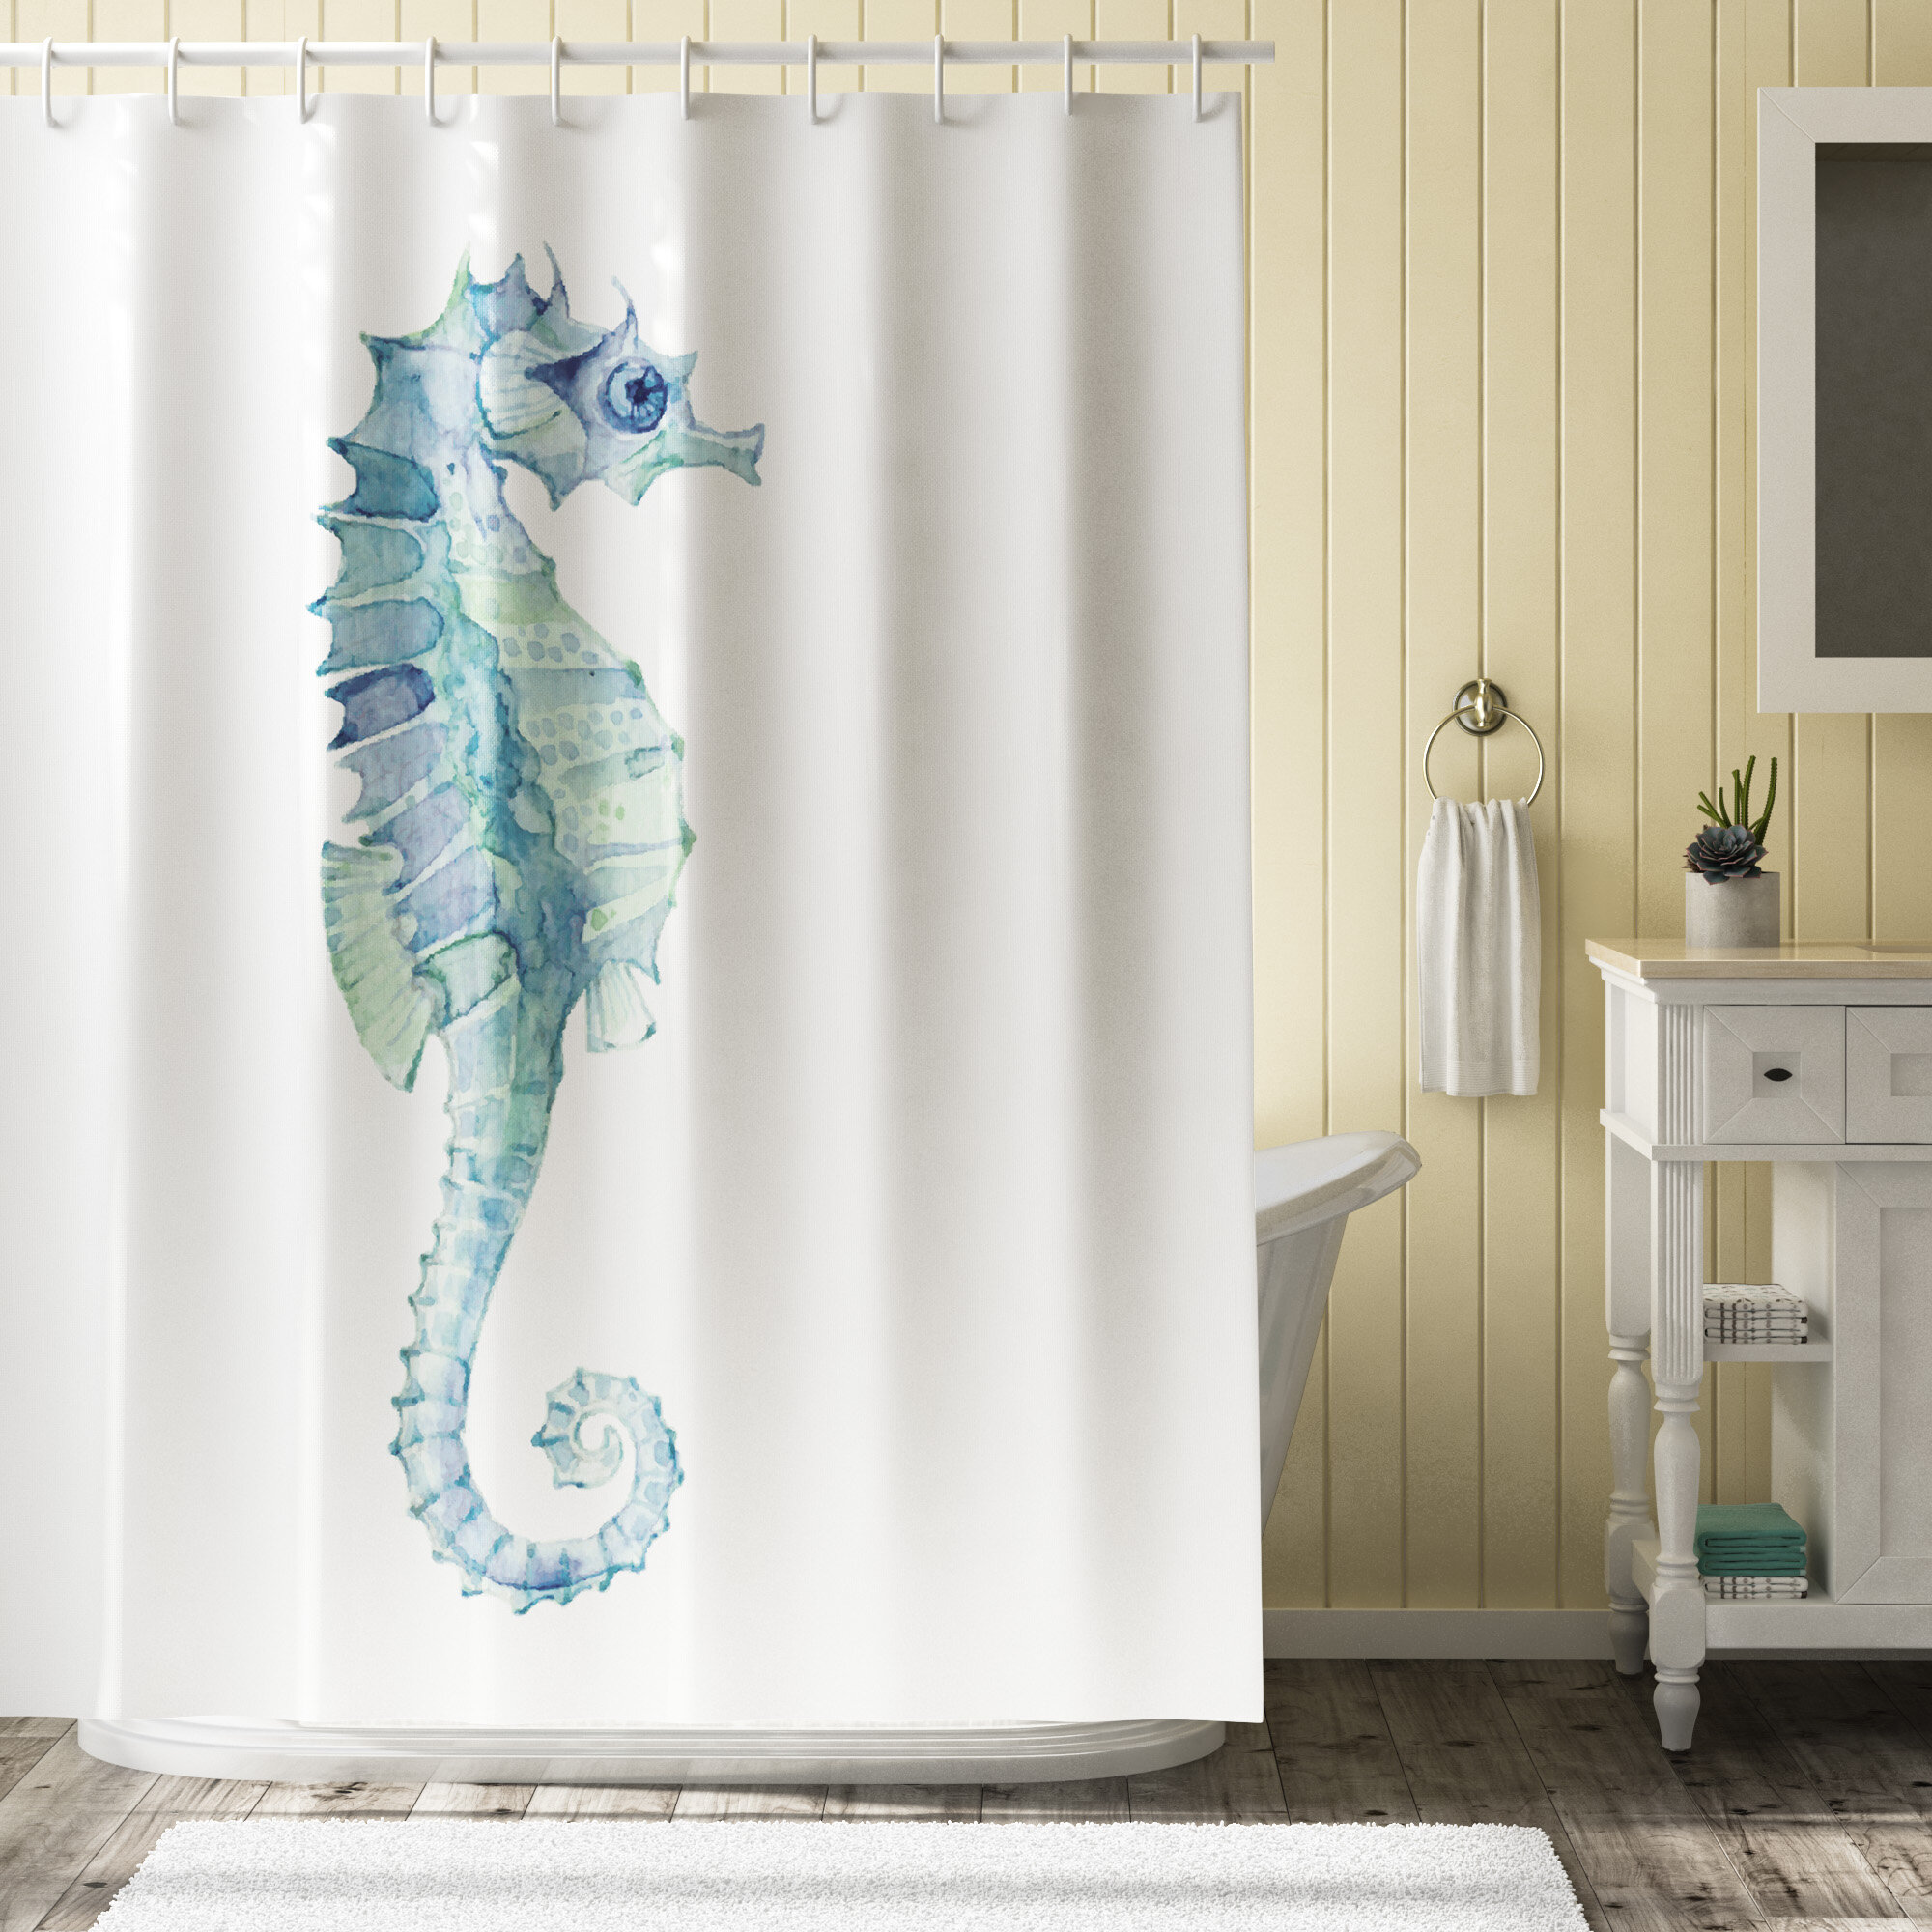 Highland Dunes Roxanna Painbrush Photo Seahorse Single Shower Curtain Reviews